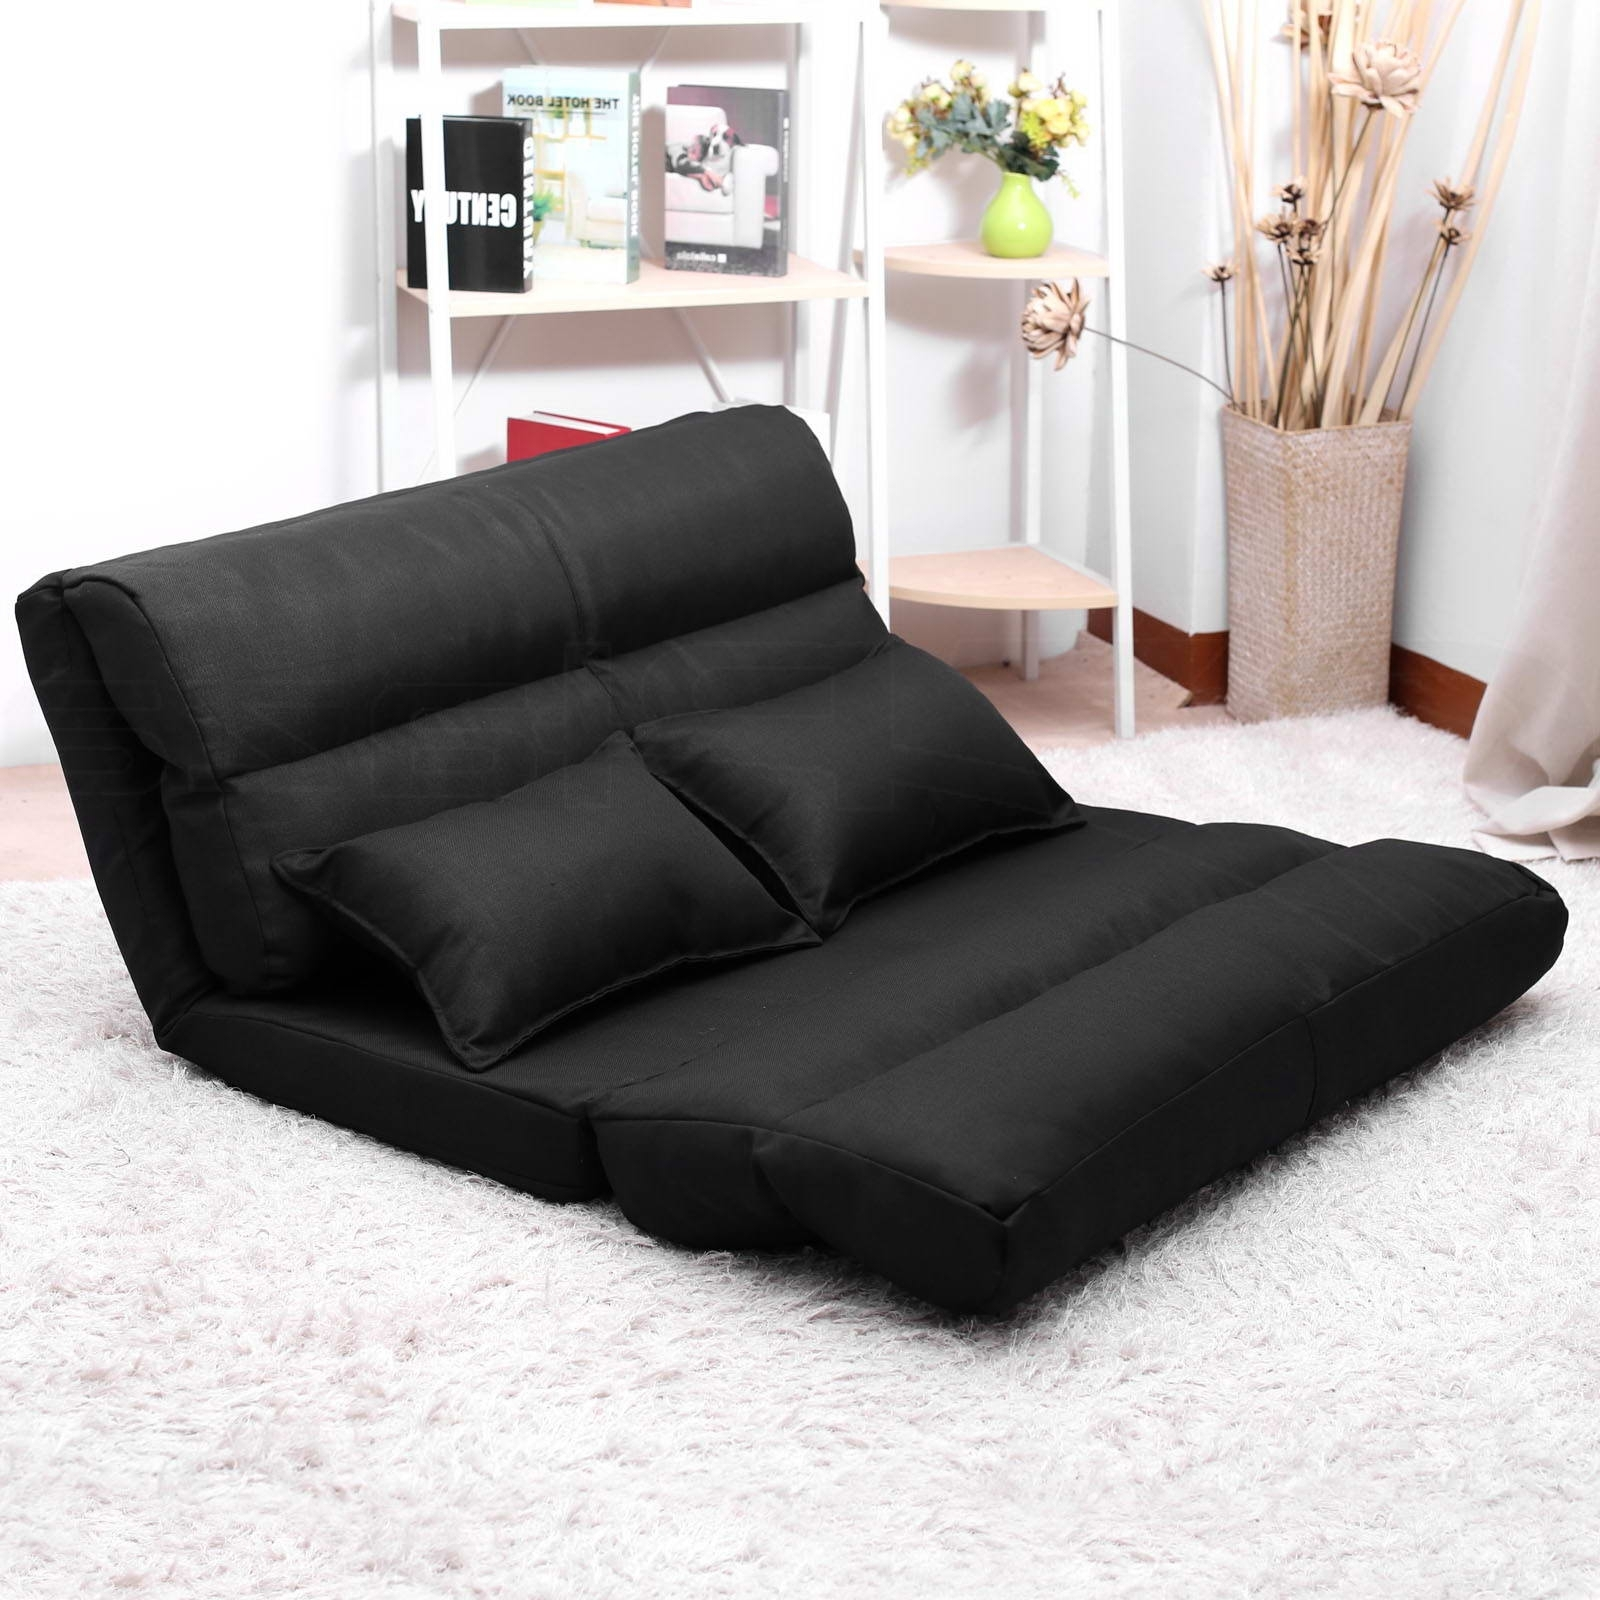 Chaise Lounge Sofa Beds With Regard To 2017 Lounge Sofa Bed Double Size Floor Recliner Folding Chaise Chair (View 6 of 15)